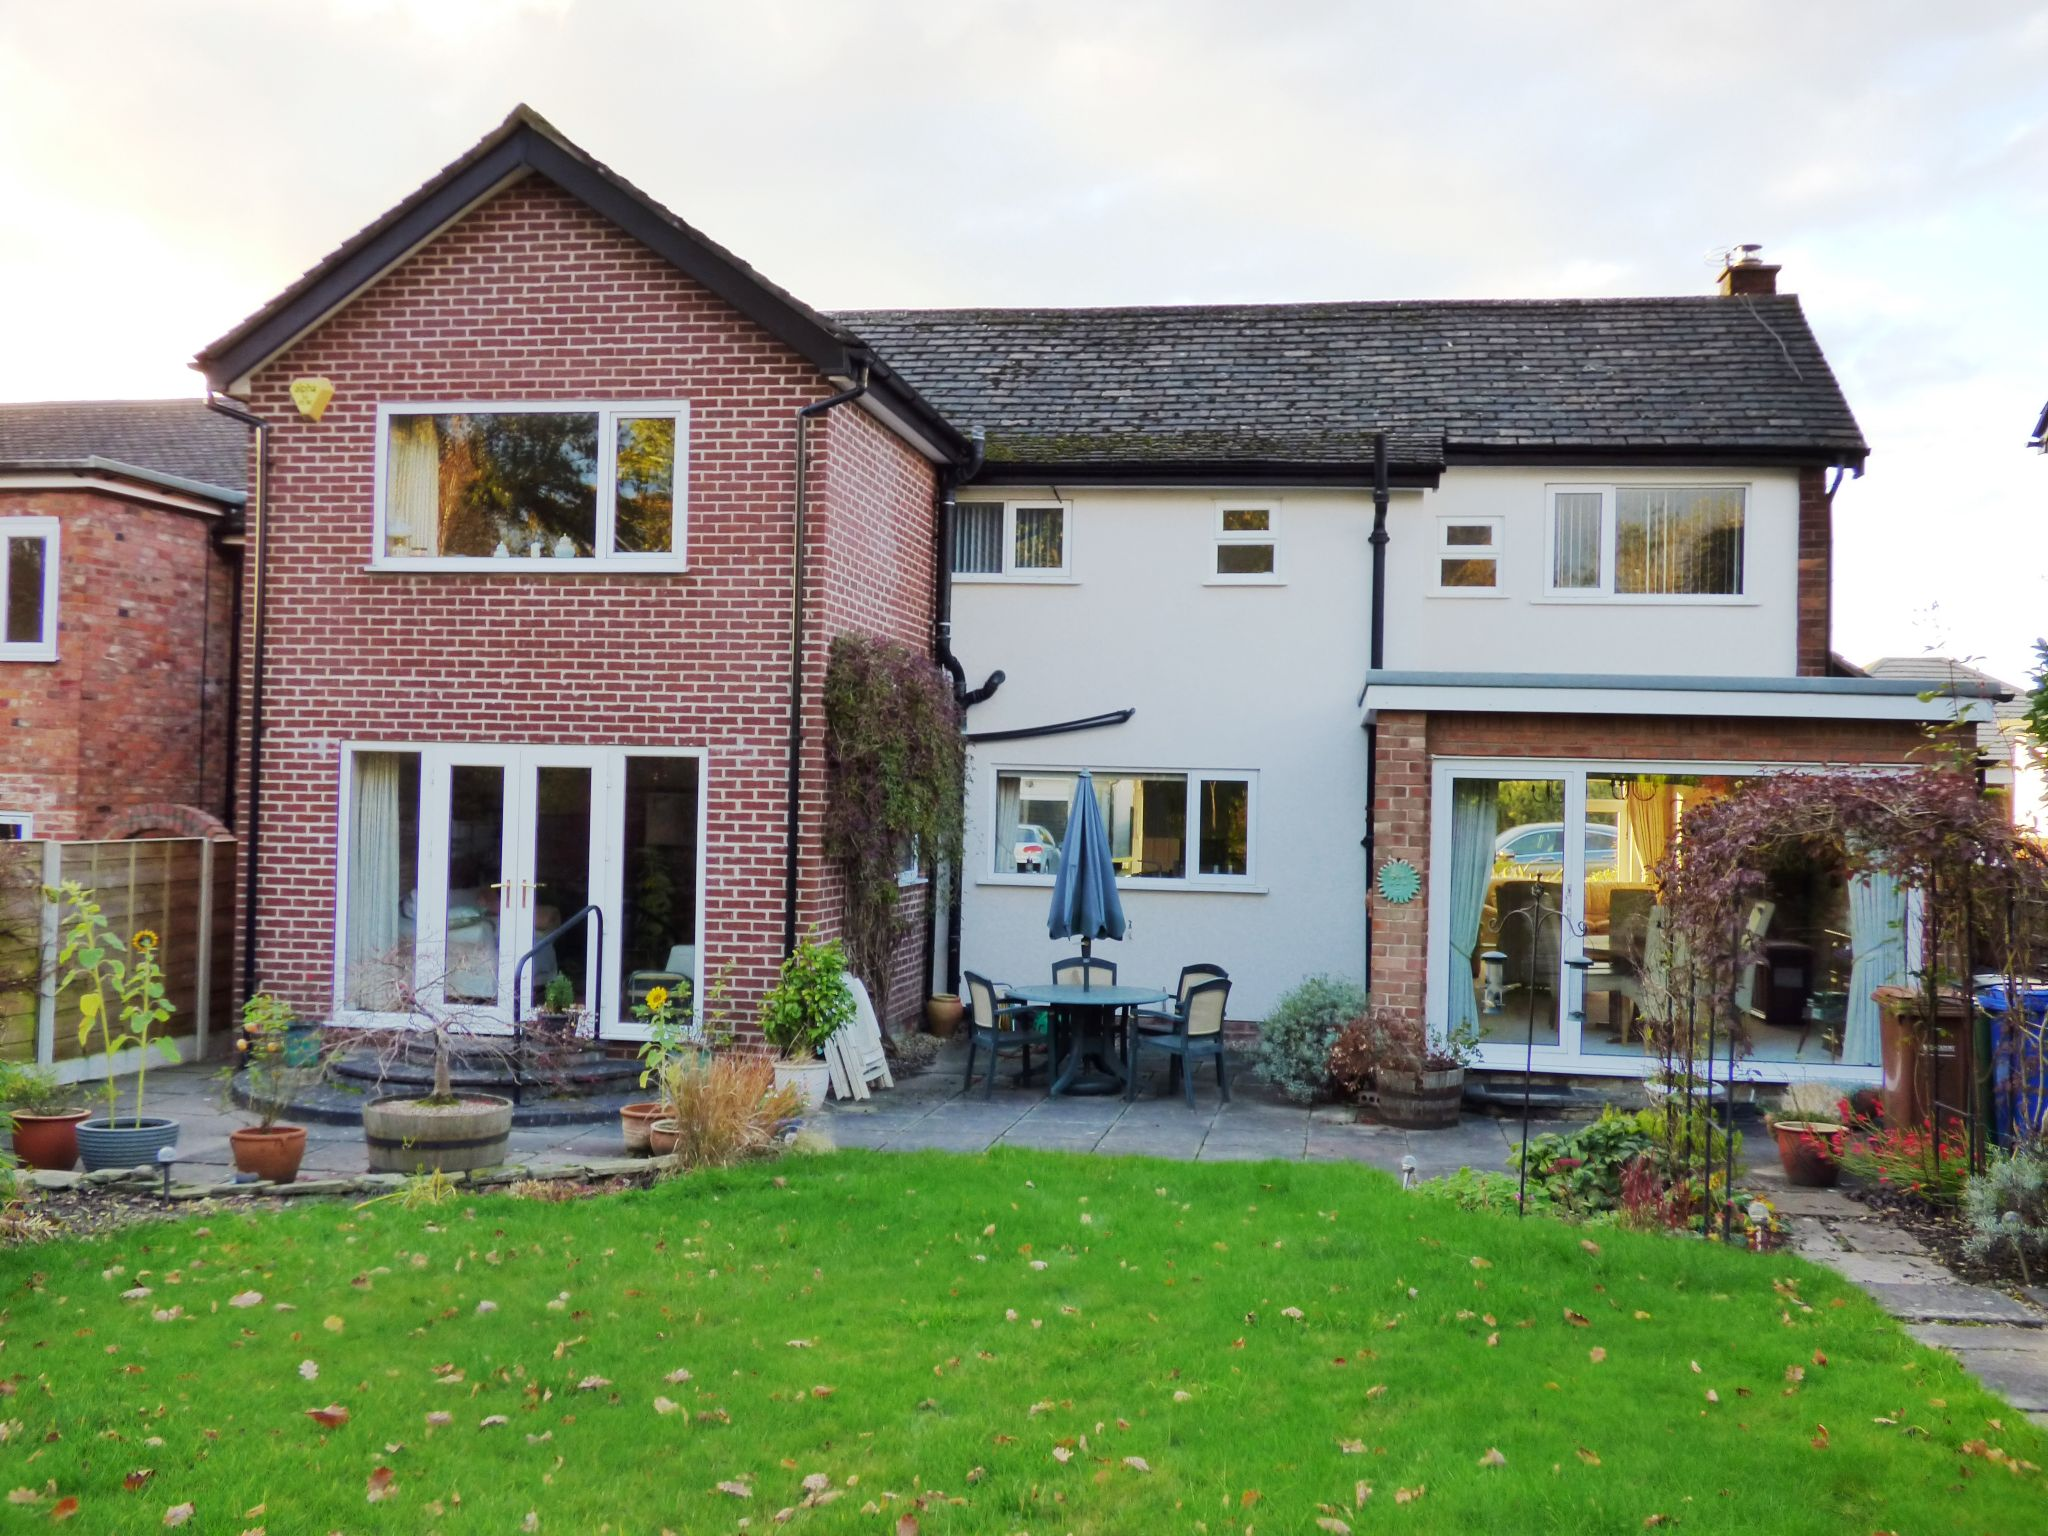 4 Bedroom Detached House For Sale - Photograph 18